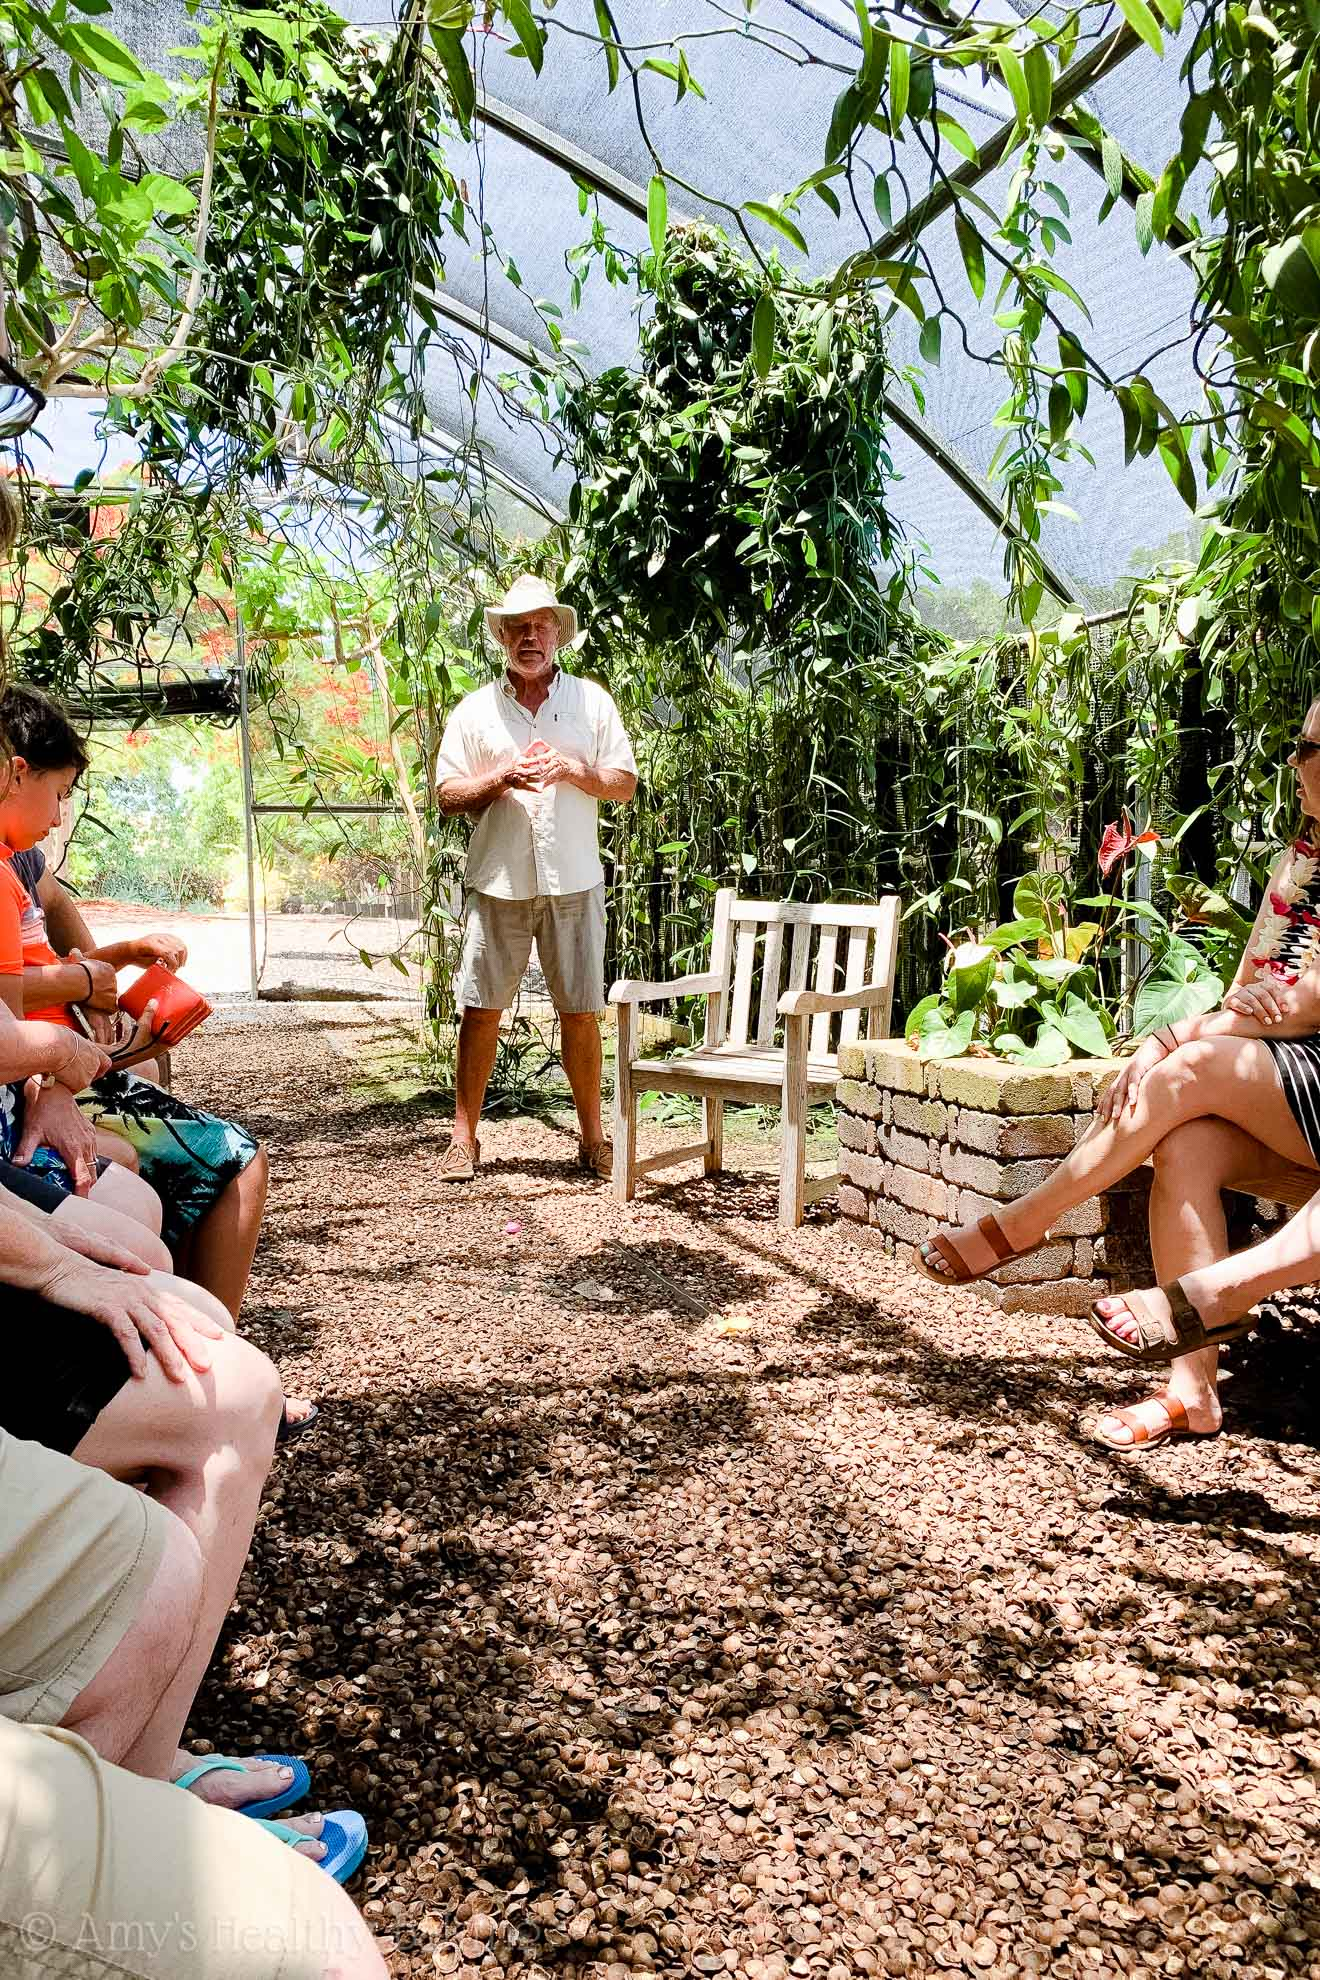 Guy Cellier giving a vanilla bean tour at the Vanillerie on the Big Island of Hawaii